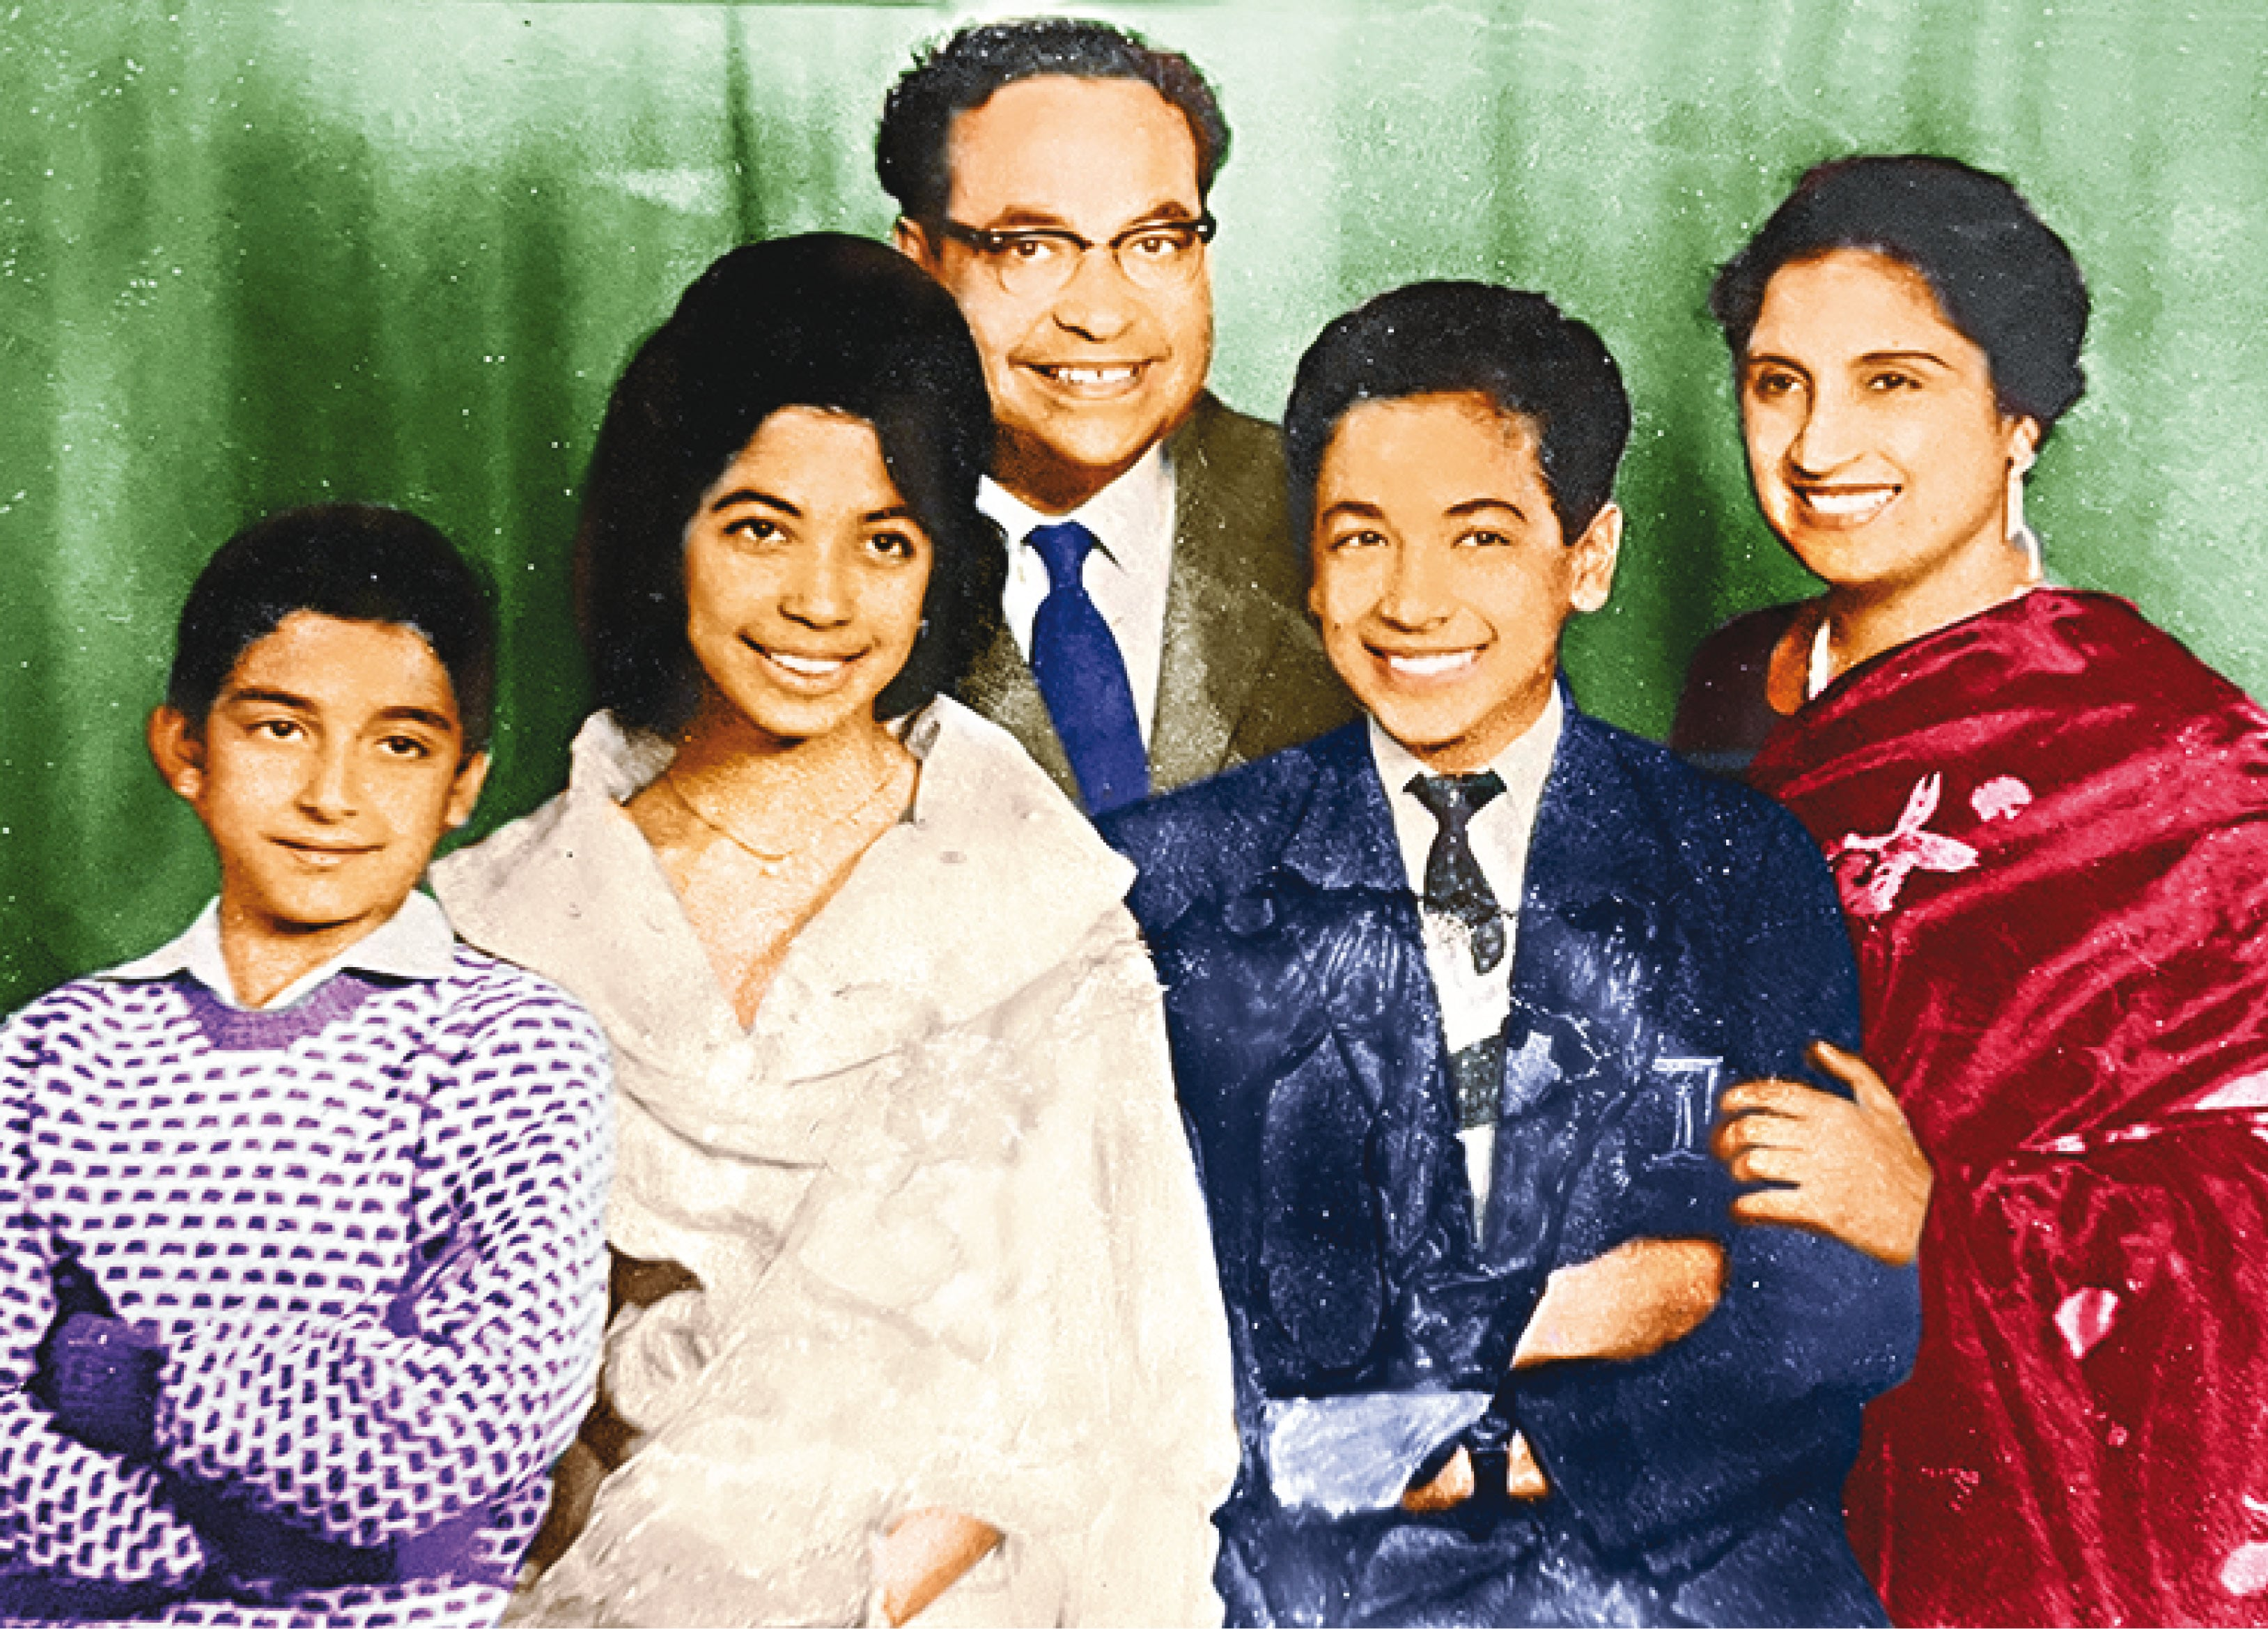 Ritu with her parents, Puran and Lila Mehta, brothers Rajiv (on her left) and Raman at Studio Mall Road in Shimla